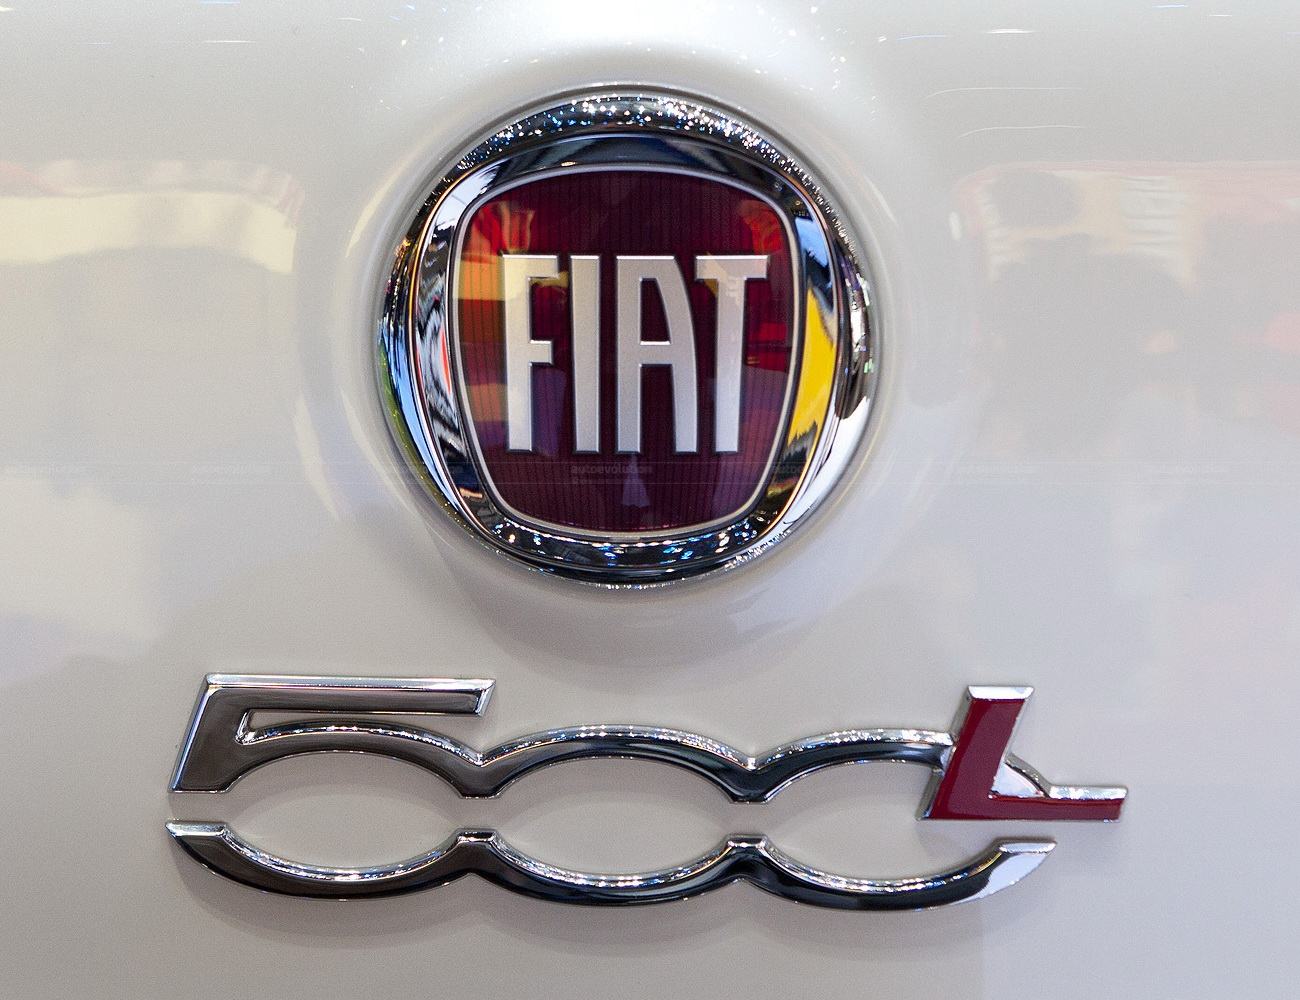 Fiat Logo Fiat Car Symbol Meaning And History Car Brand Names